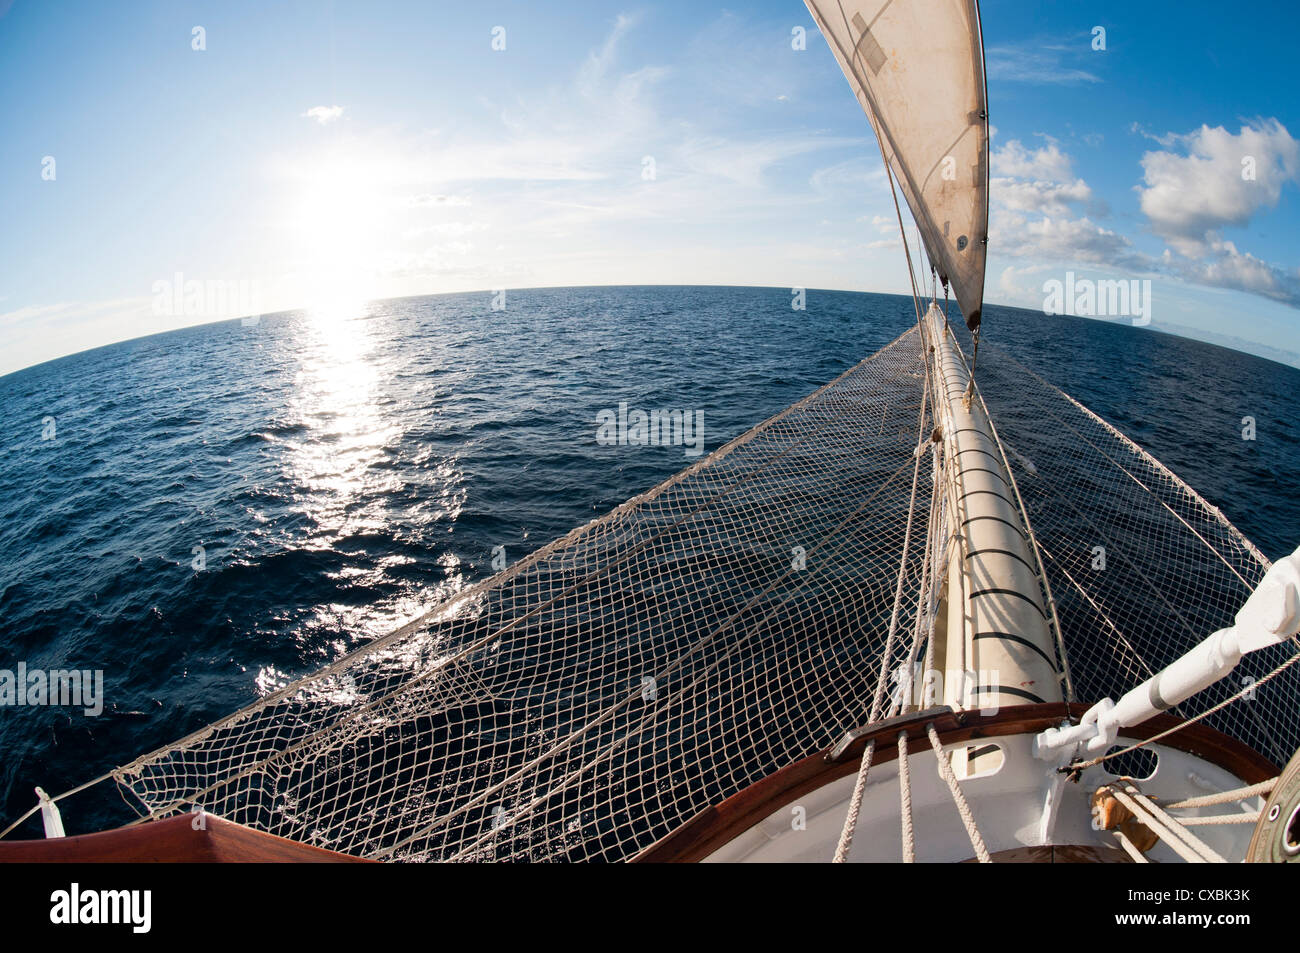 star clipper sailing cruise ship deshaies basse terre guadeloupe stock photo royalty free. Black Bedroom Furniture Sets. Home Design Ideas